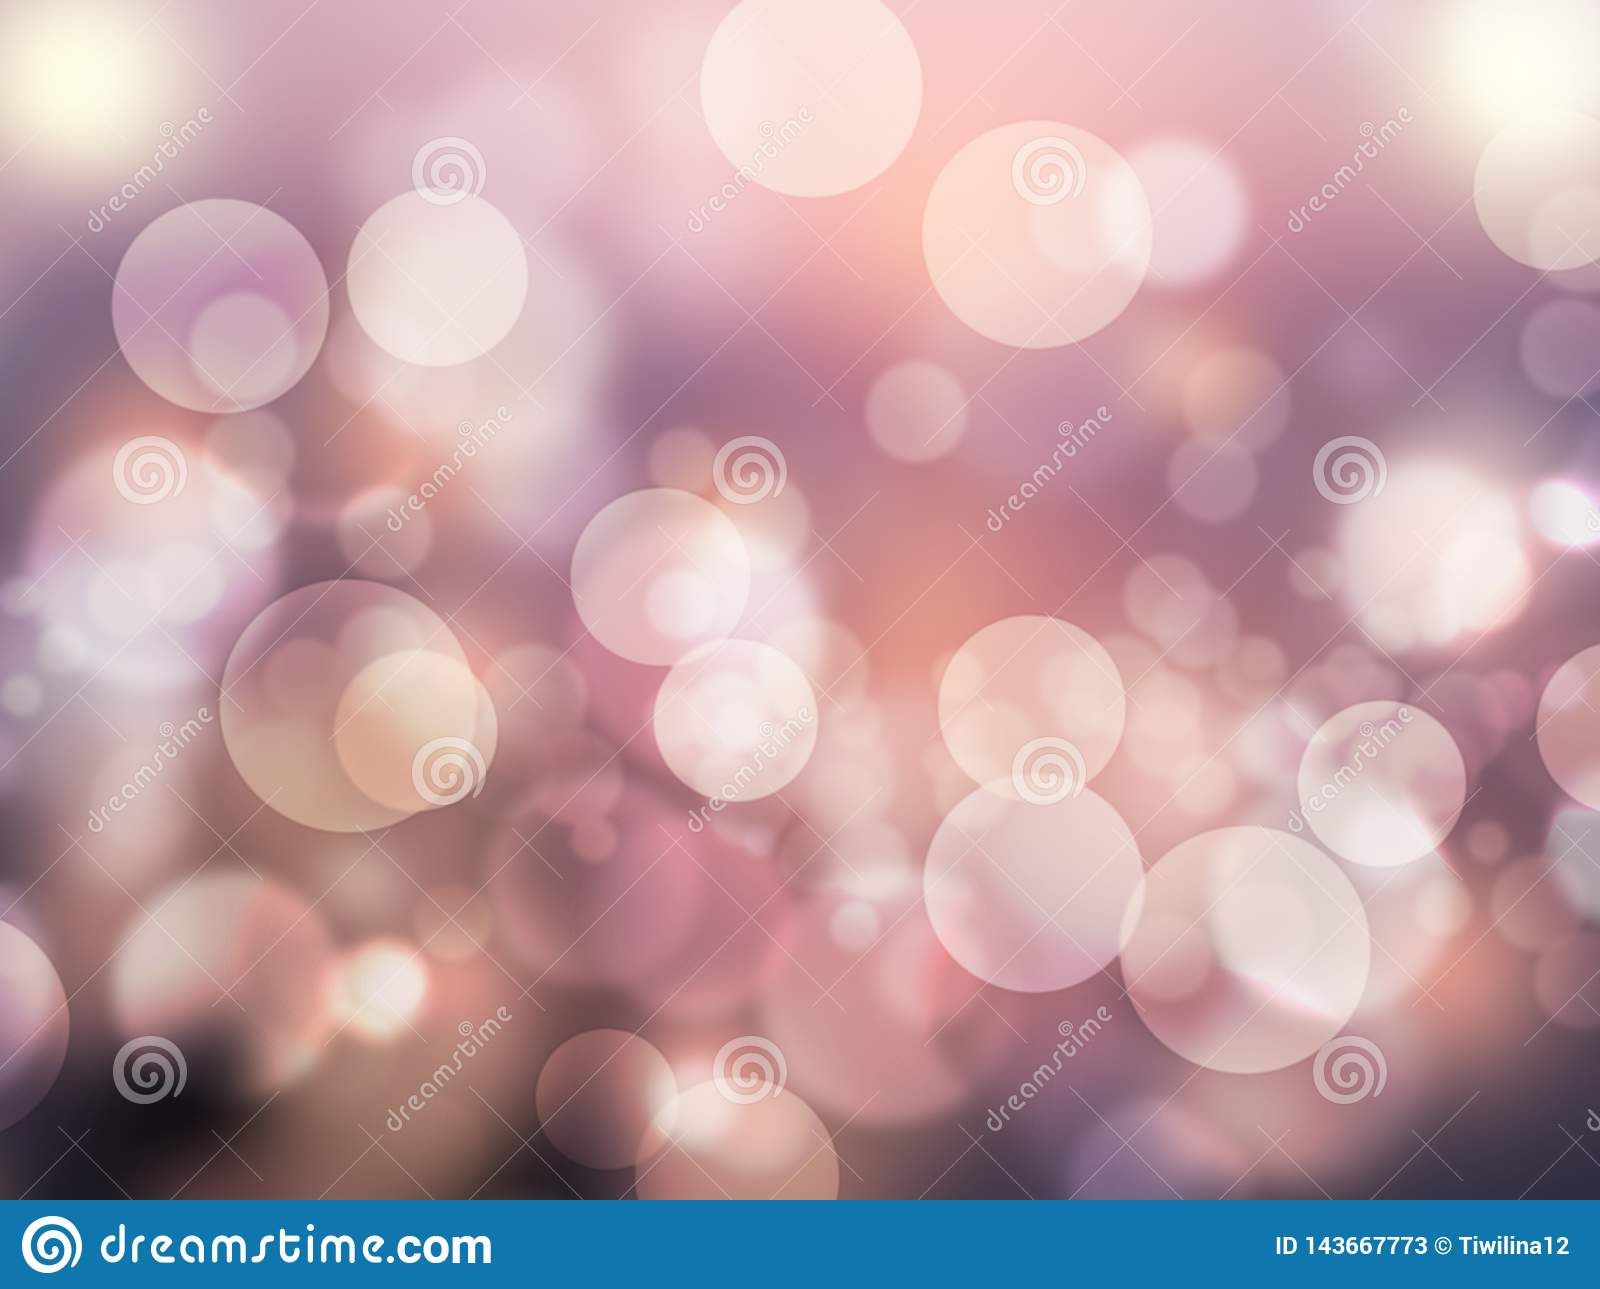 Abstract bokeh effect romantic purple abstract background shiny and blurred wallpaper